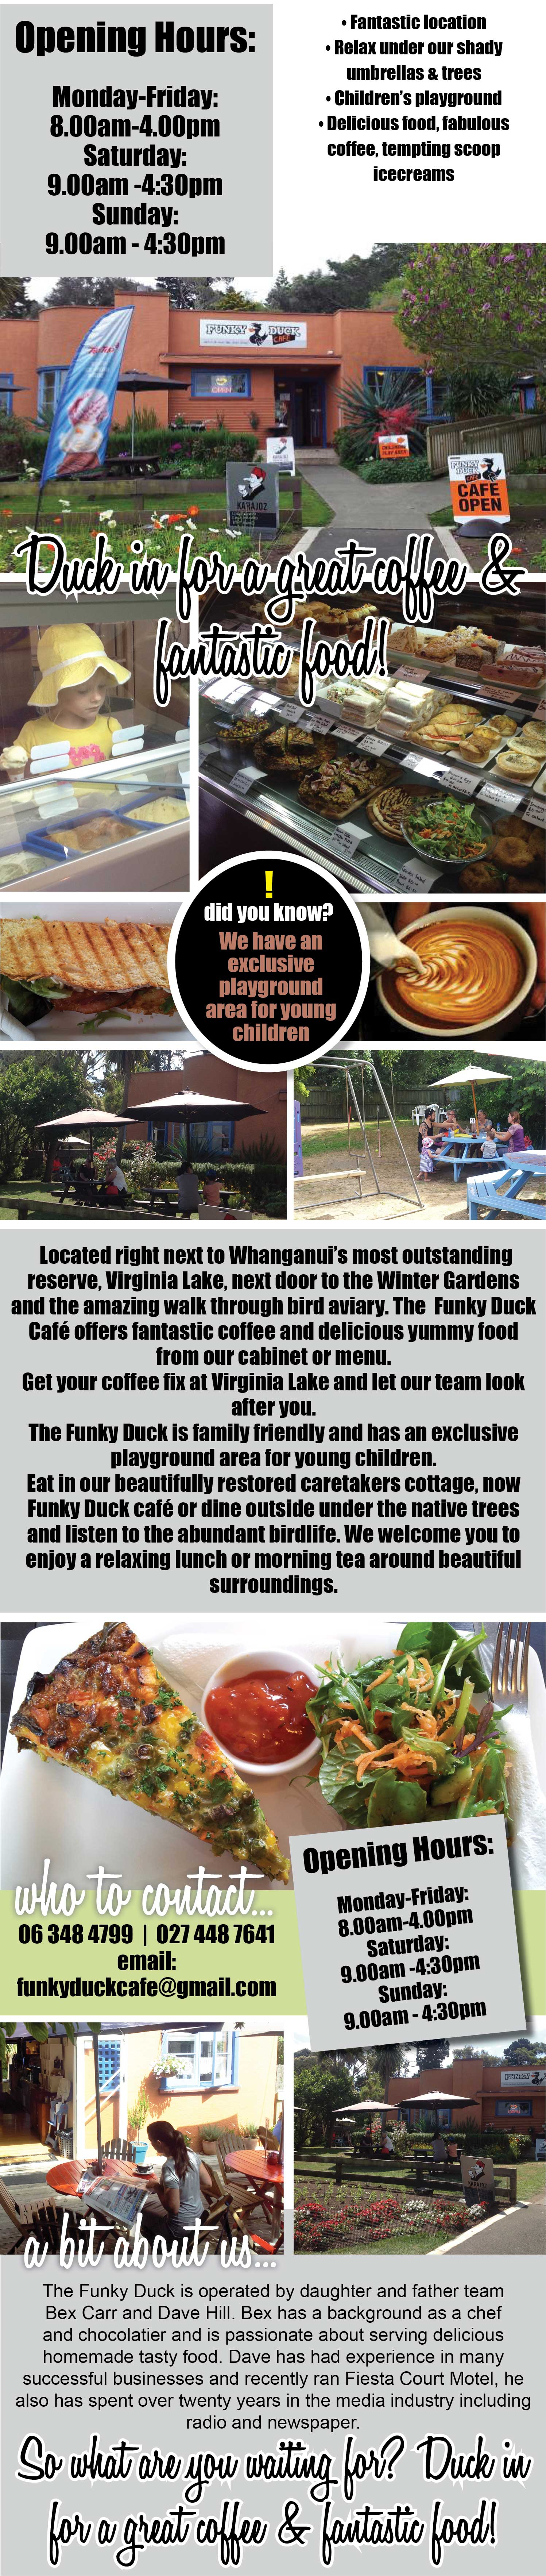 Funky Duck Cafe, Wanganui, fabulous food, fantastic location, delicious coffee, scoop ice cream, exclusive children's playground, Virginia Lake Wanganui, dine under shady umbrellas and trees